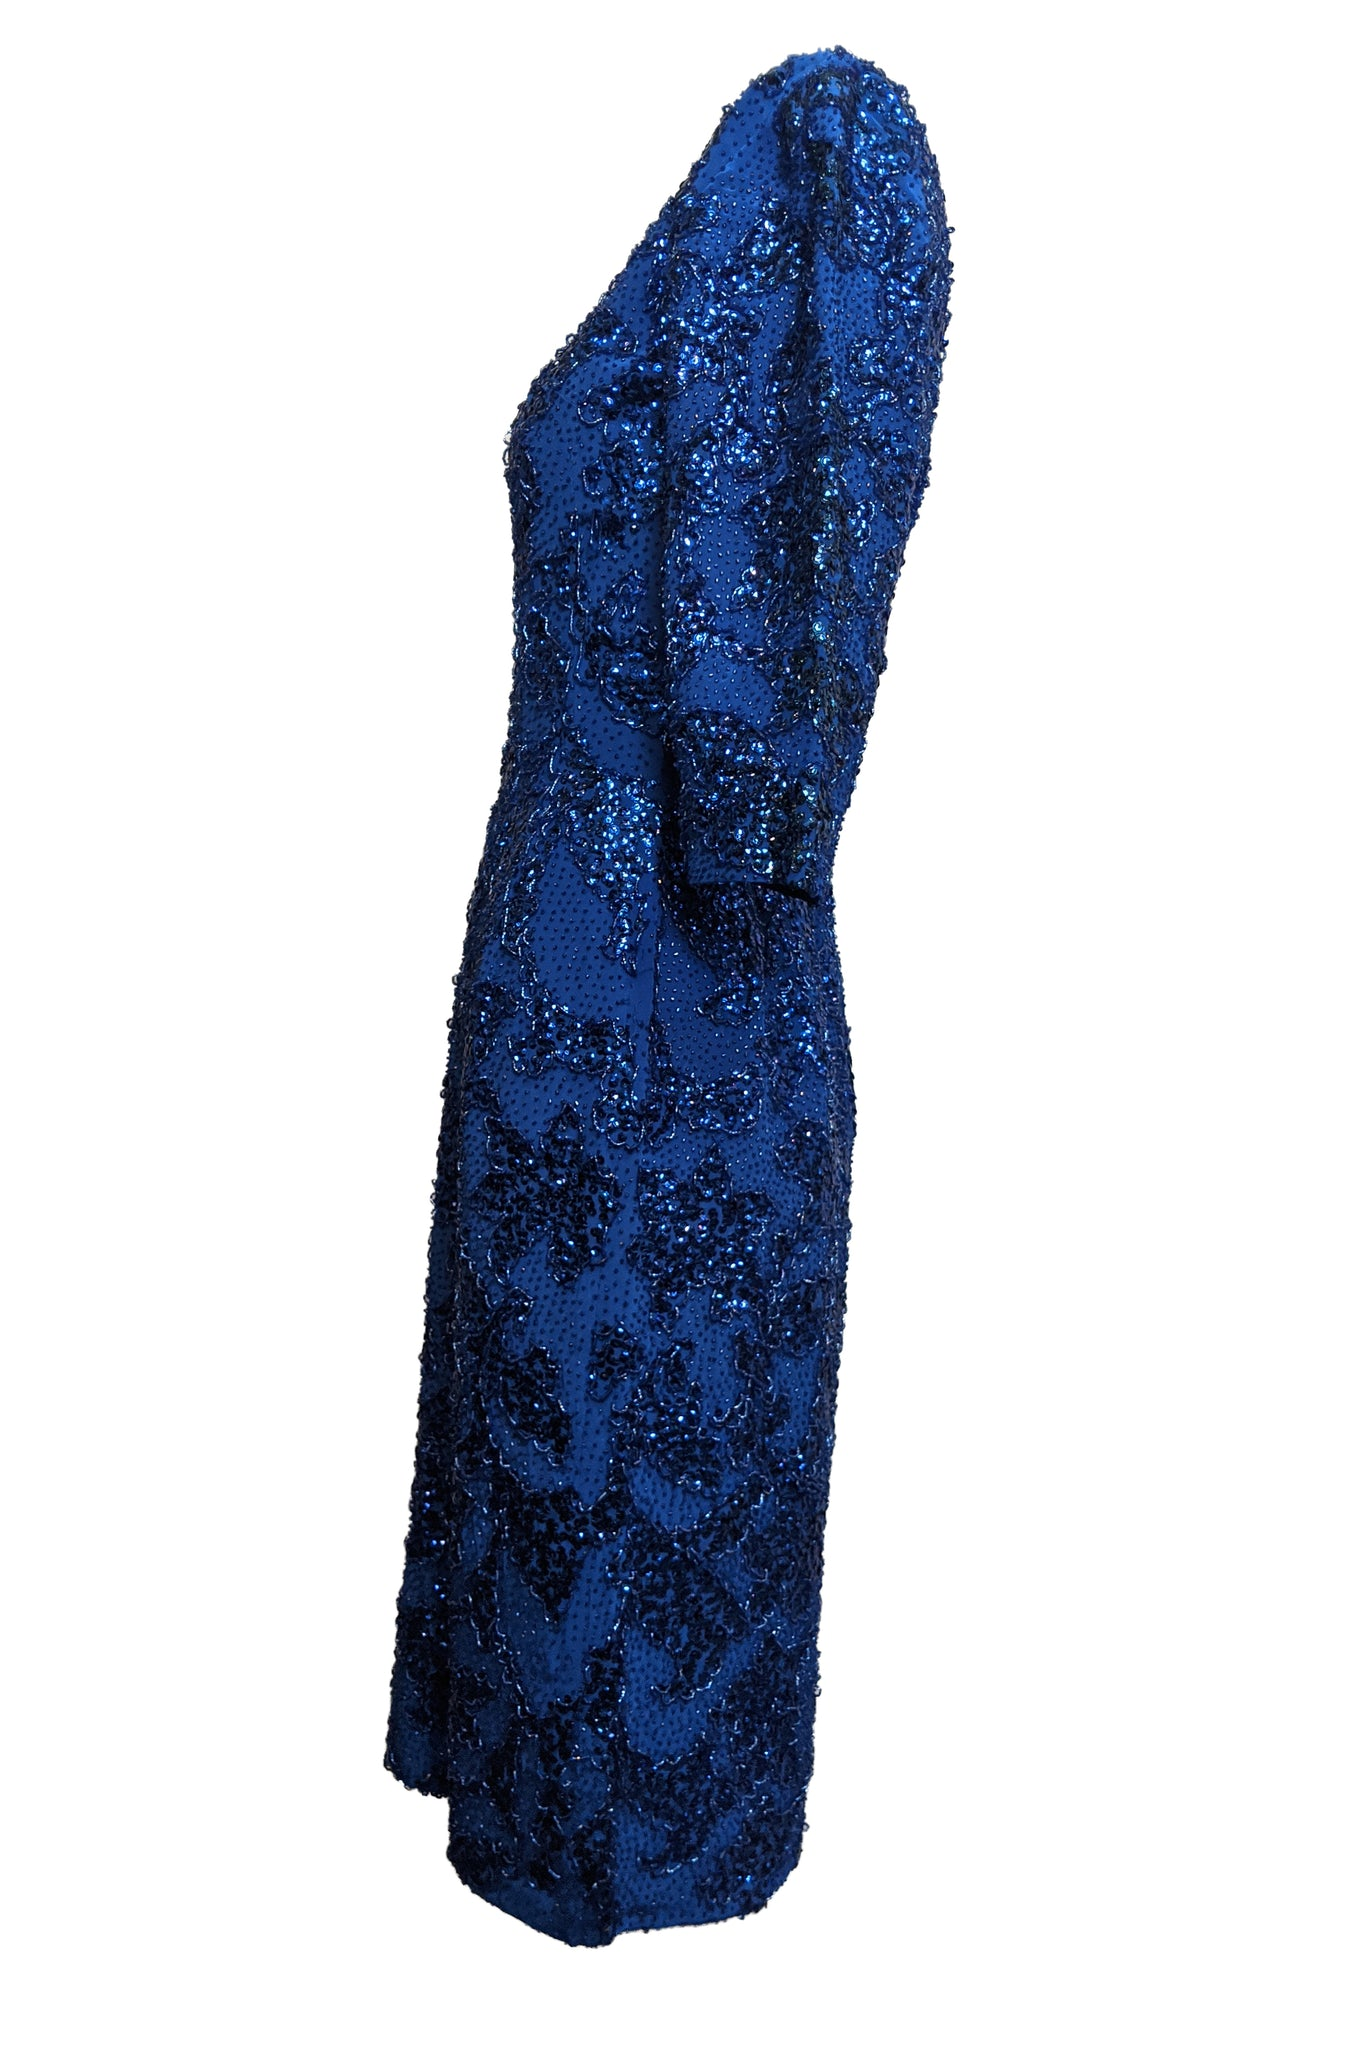 Gene Shelley 60s Egyptian Blue Beaded Wiggle Dress SIDE 3 of 6